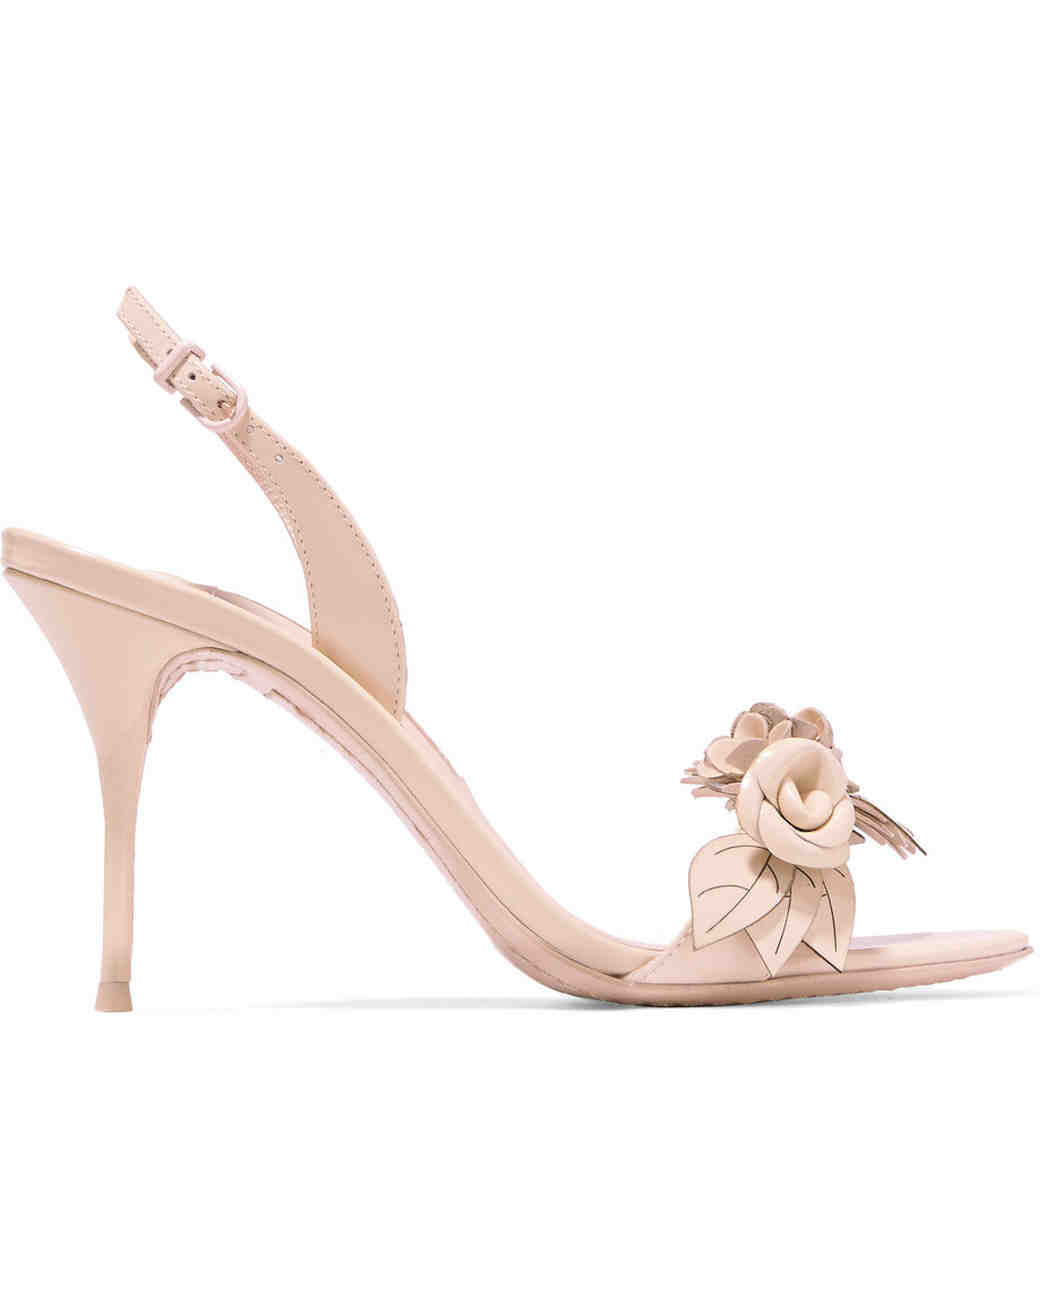 Sophia Webster Nude Heel